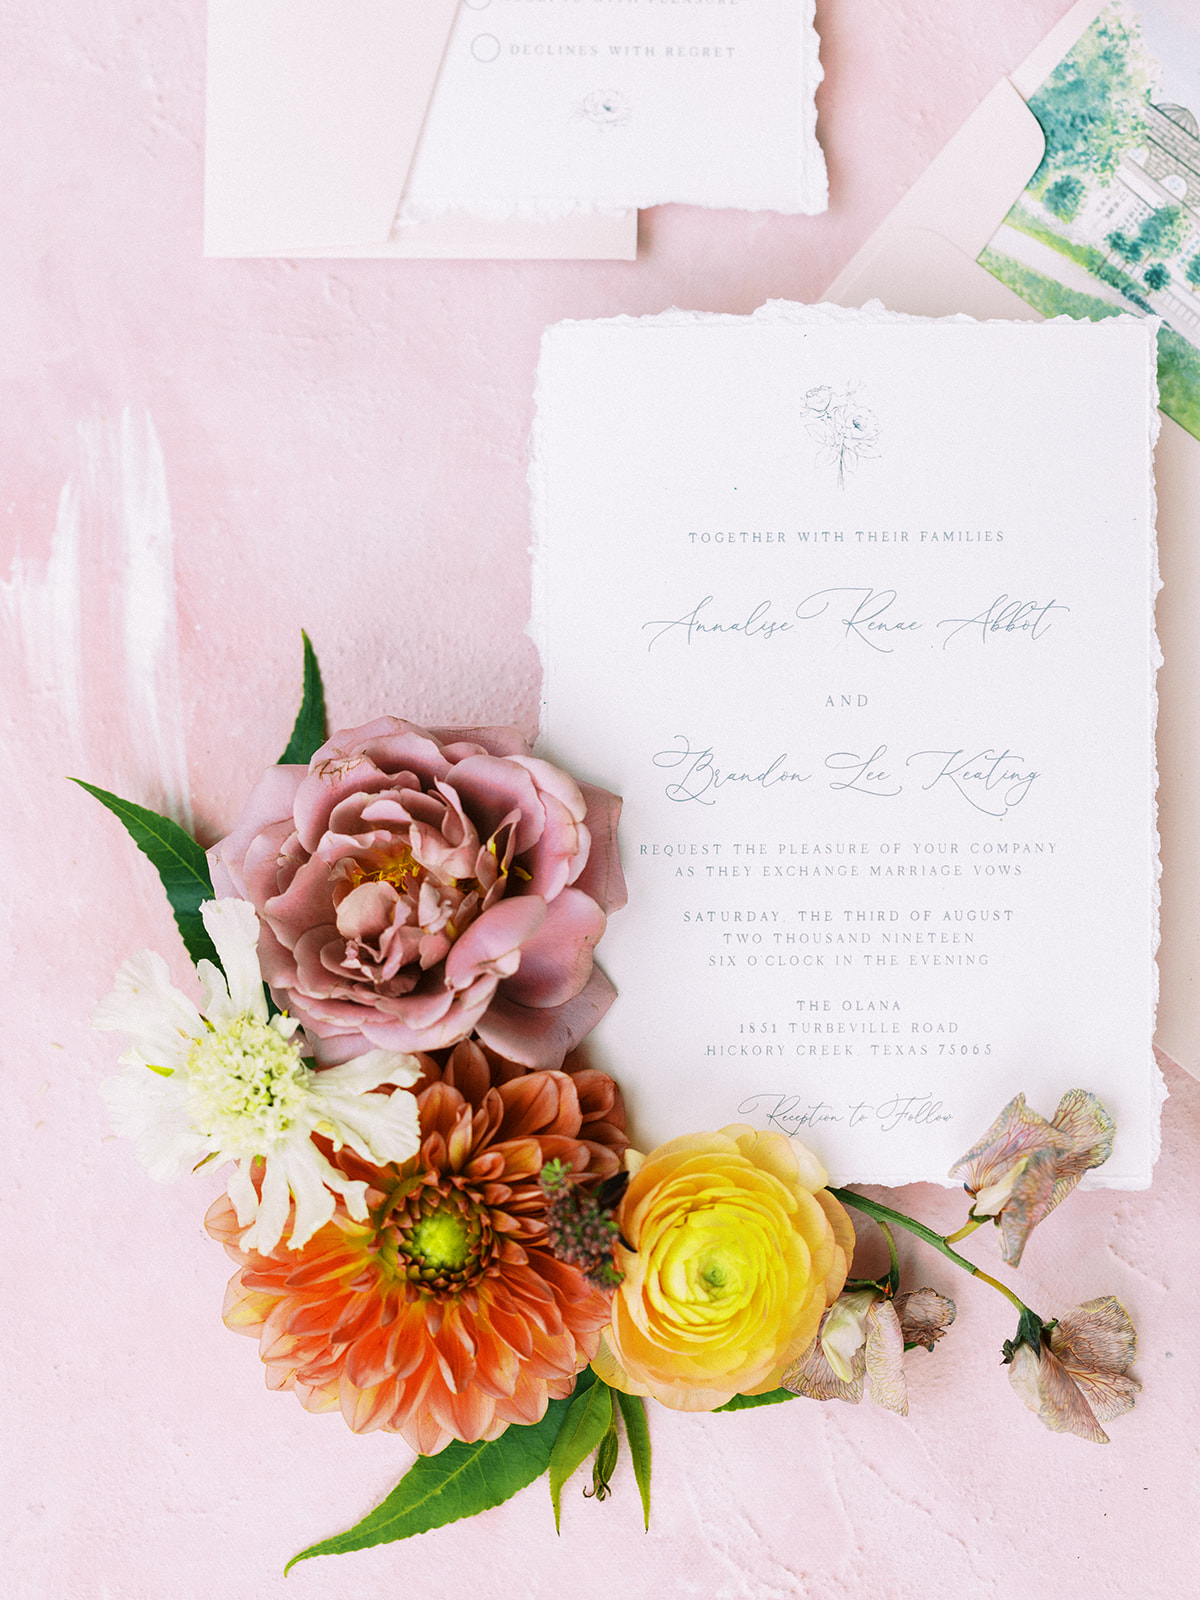 Wedding invitation design: Whimsical garden elegance styled shoot featured on Alexa Kay Events